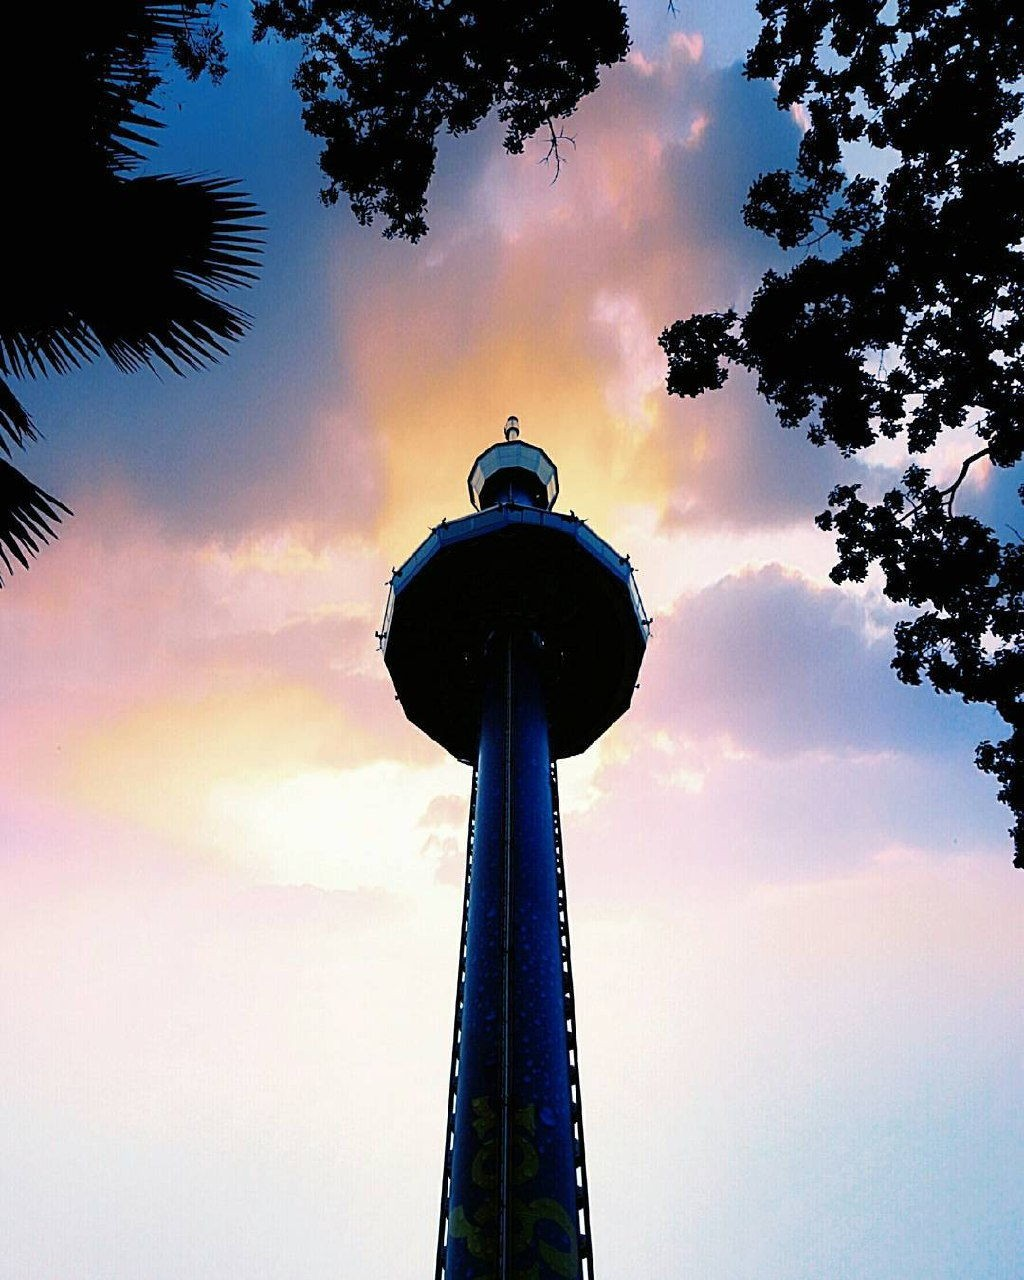 Sentosa Tiger Sky Tower closing promotion